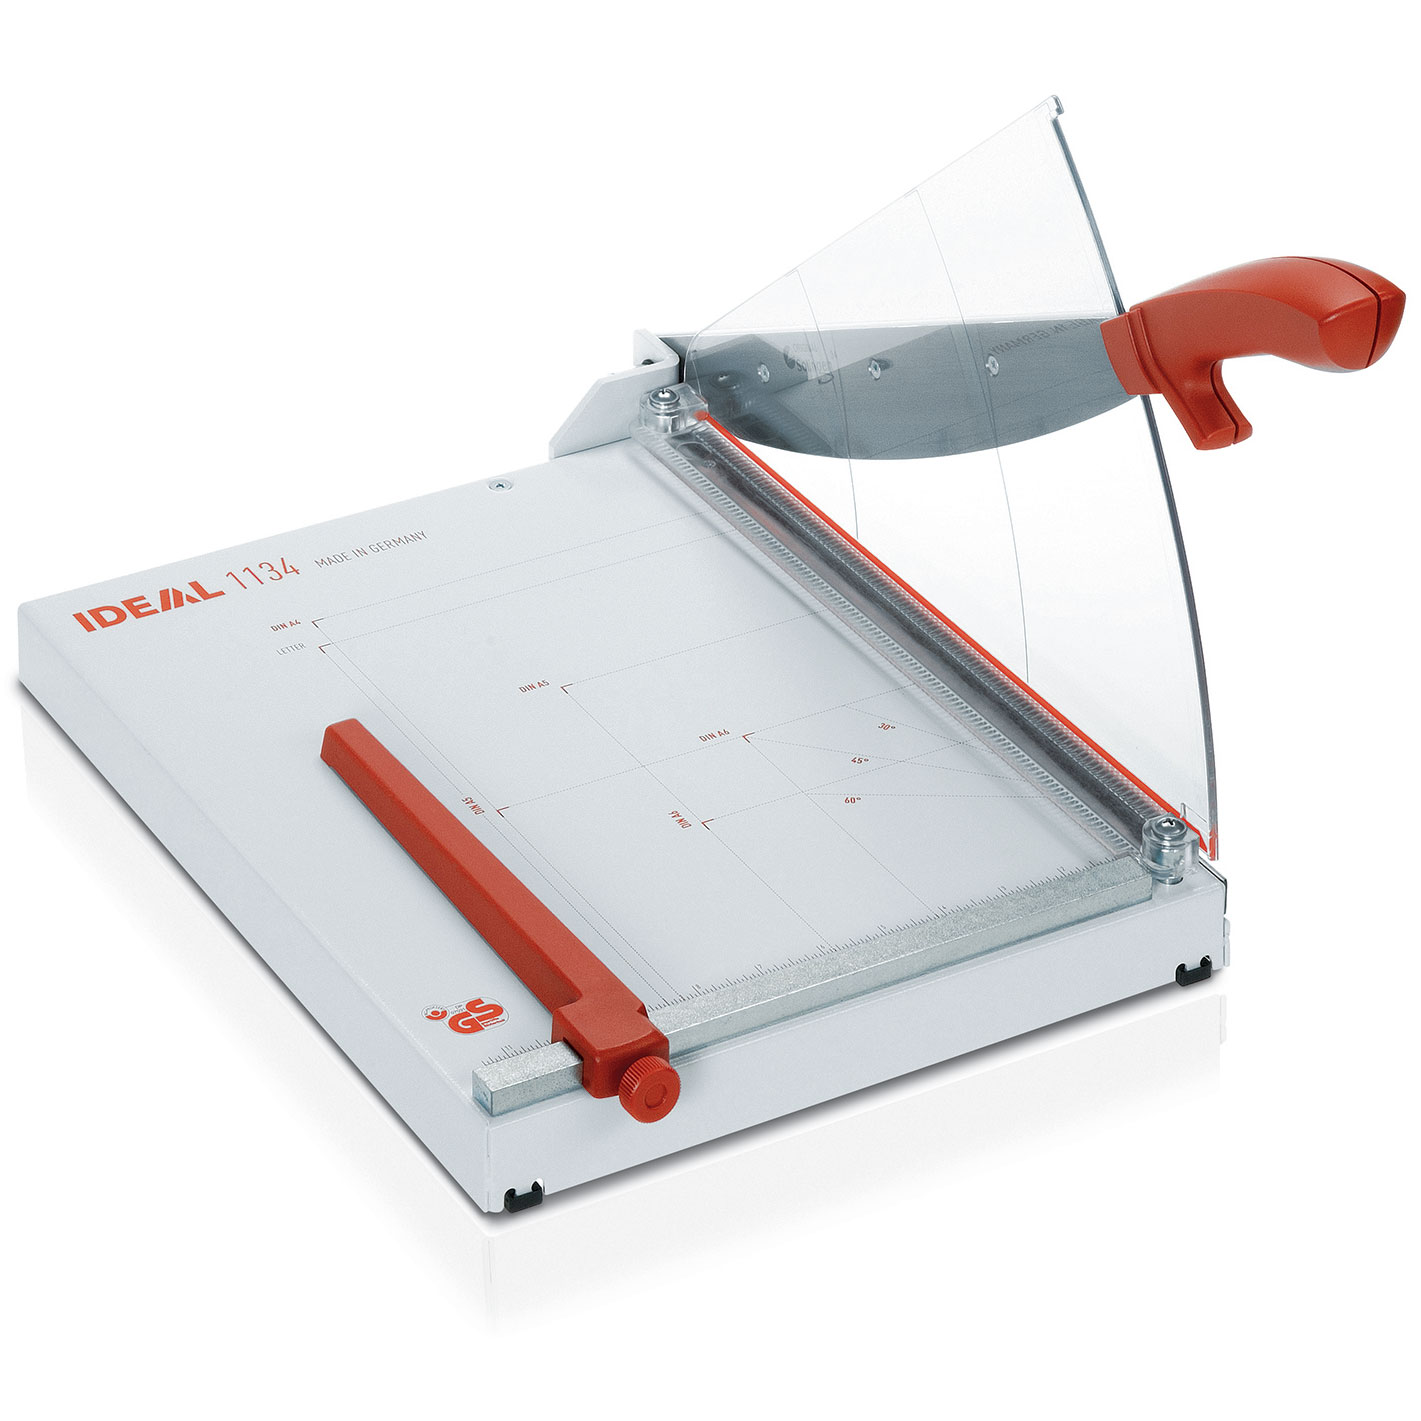 IDEAL 1134 Desktop Paper Trimmer (Guillotine)